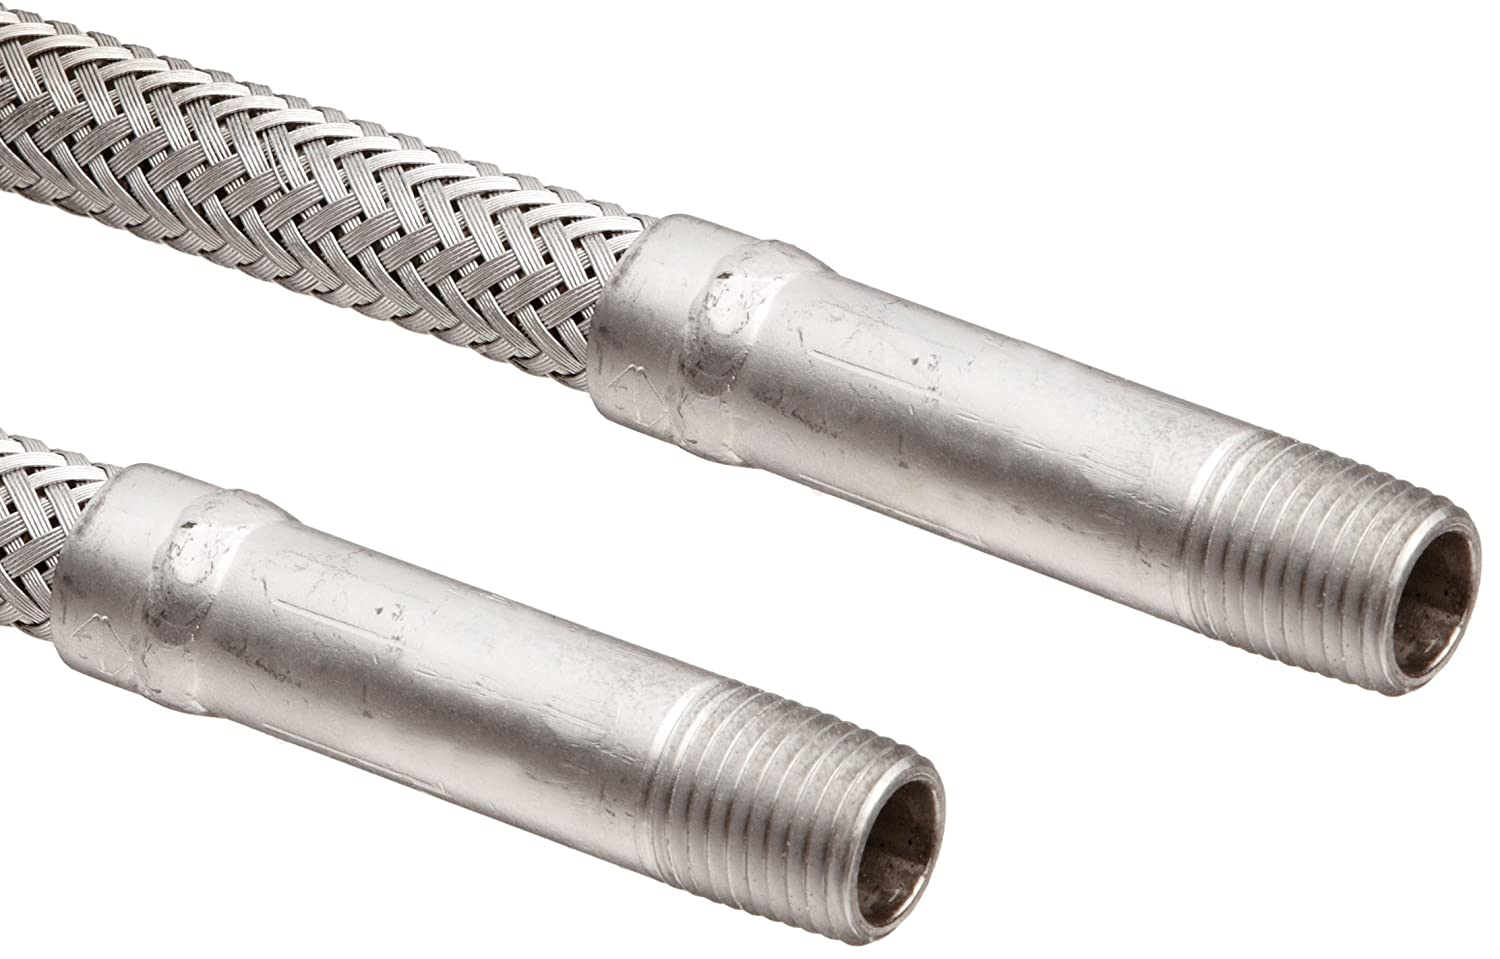 531 PSI Maximum Pressure Hose Master Annuflex Stainless Steel 316 Flexible Hose Assembly 1-1//2 Stainless Steel 316 Hex NPT Male x FJIC Swivel Connection 1-1//2 ID 12 Length